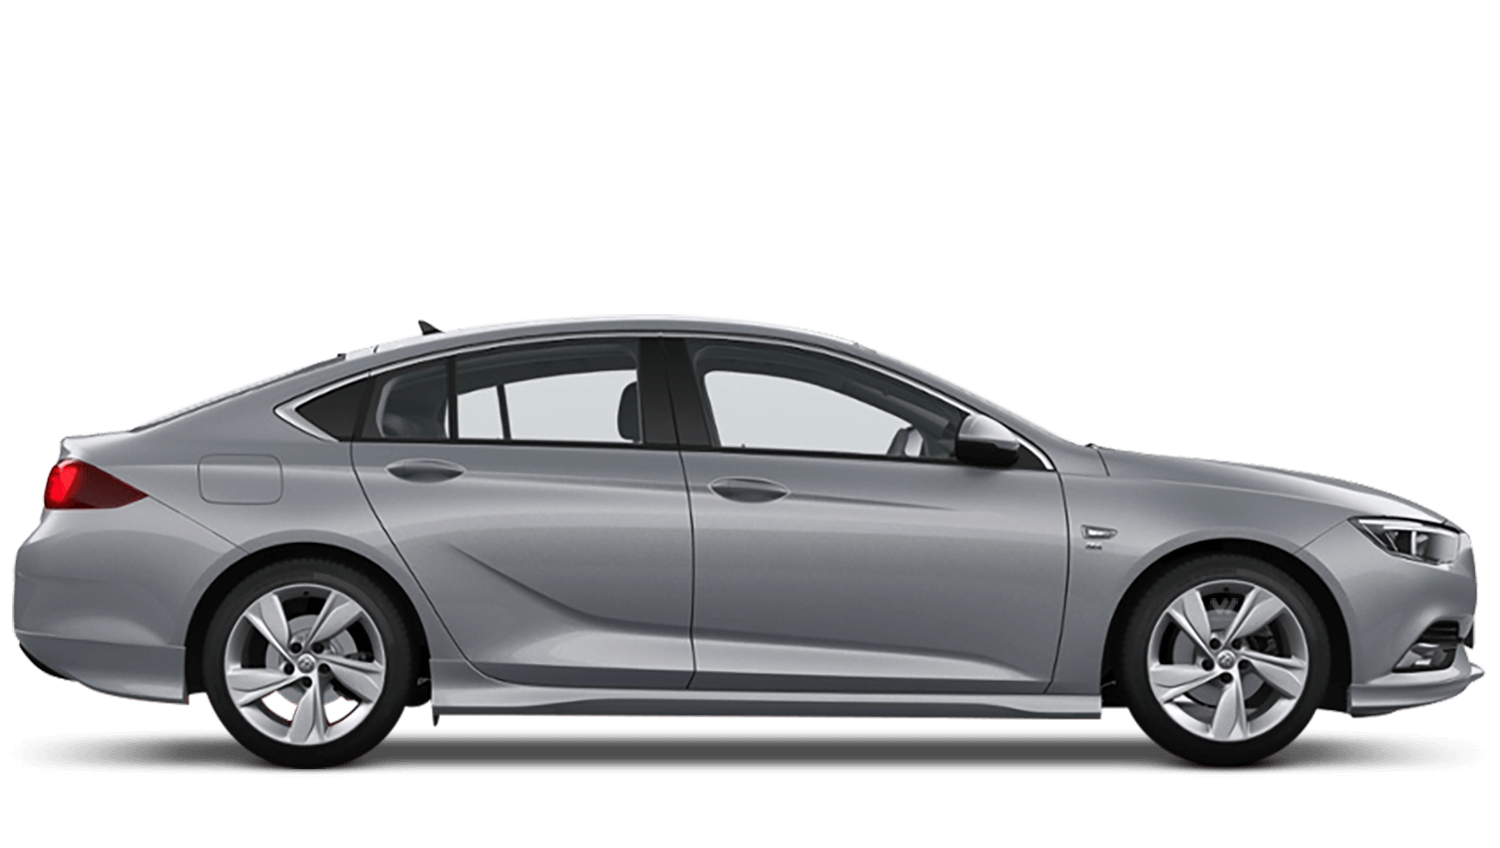 Insignia Grand Sport Business Offers